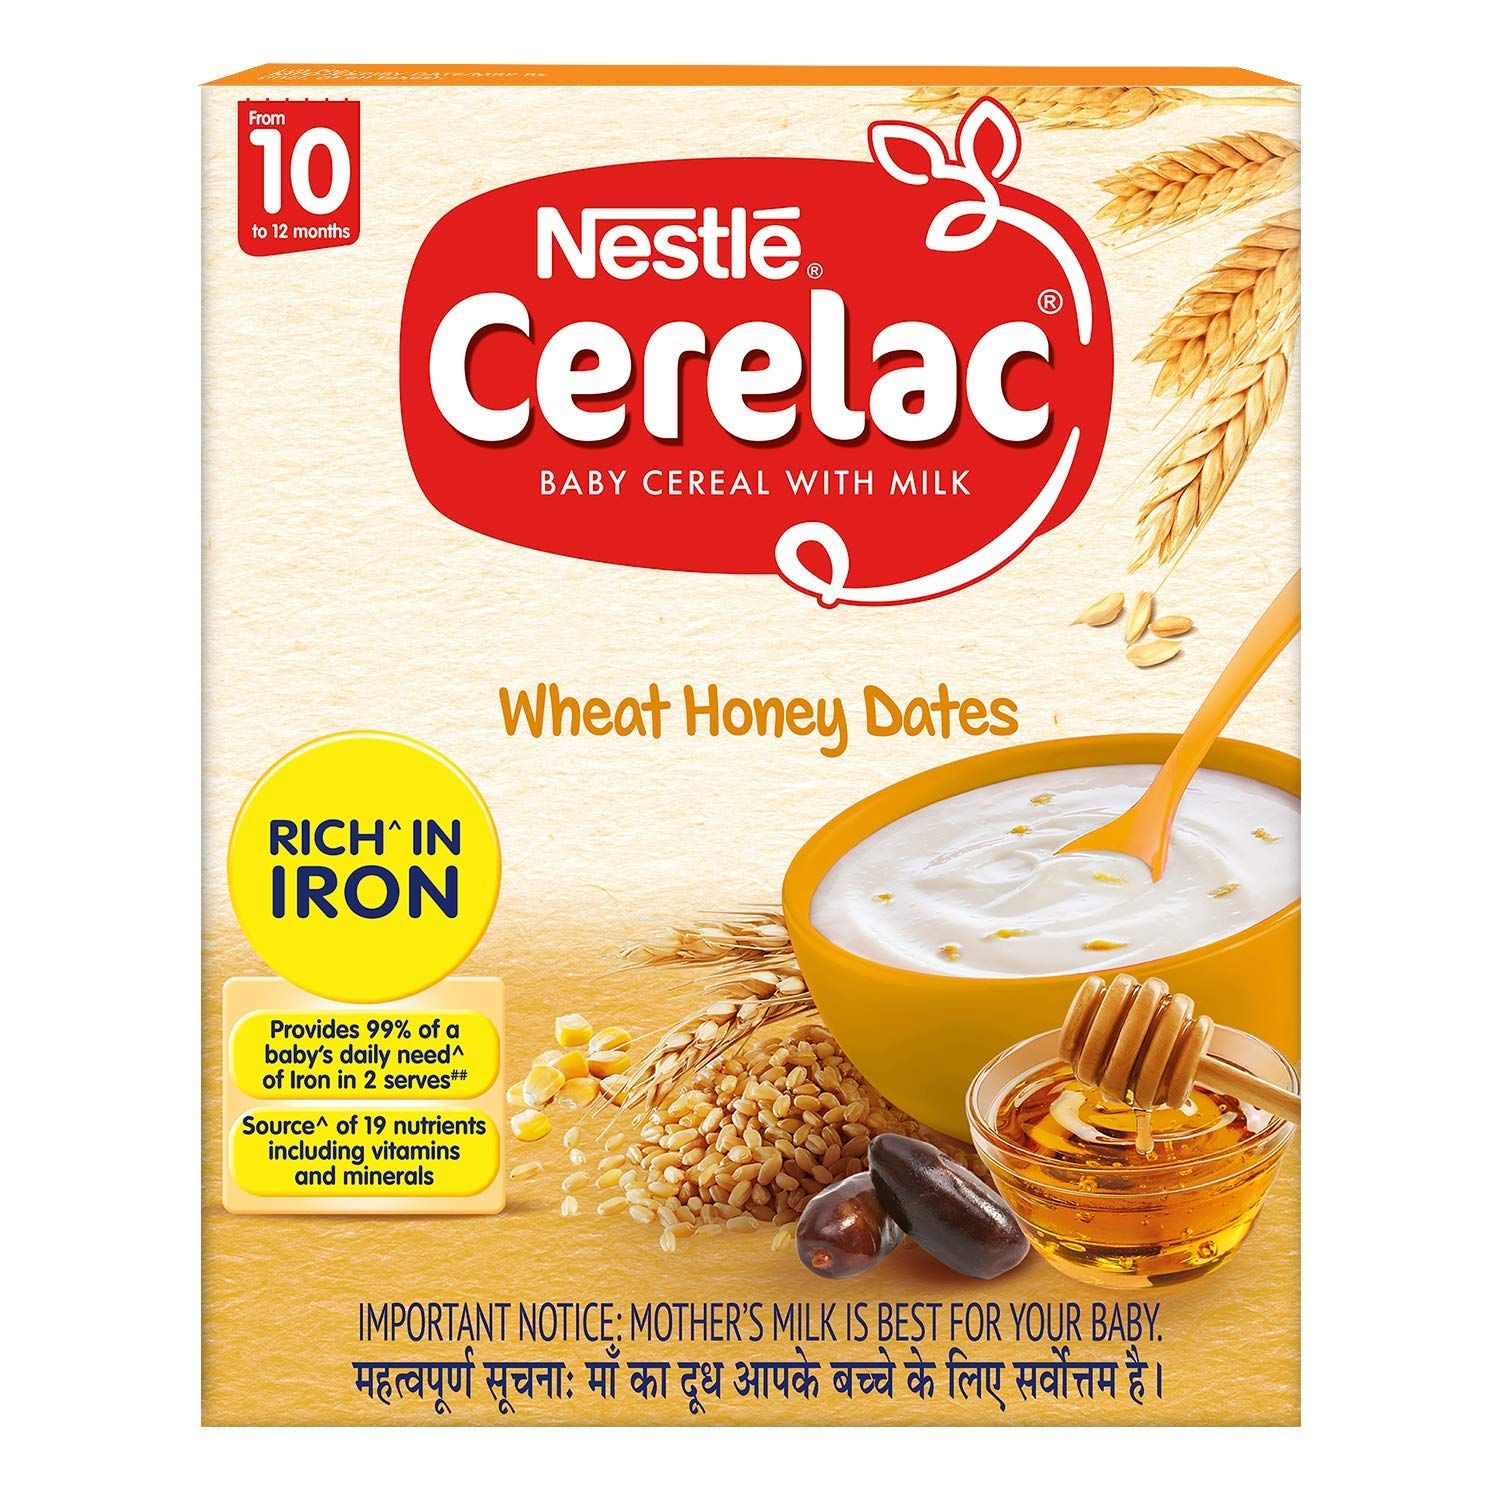 Nestlé CERELAC Fortified Baby Cereal With Milk, Wheat Honey Dates – From 10 Months, 300g BIB Pack